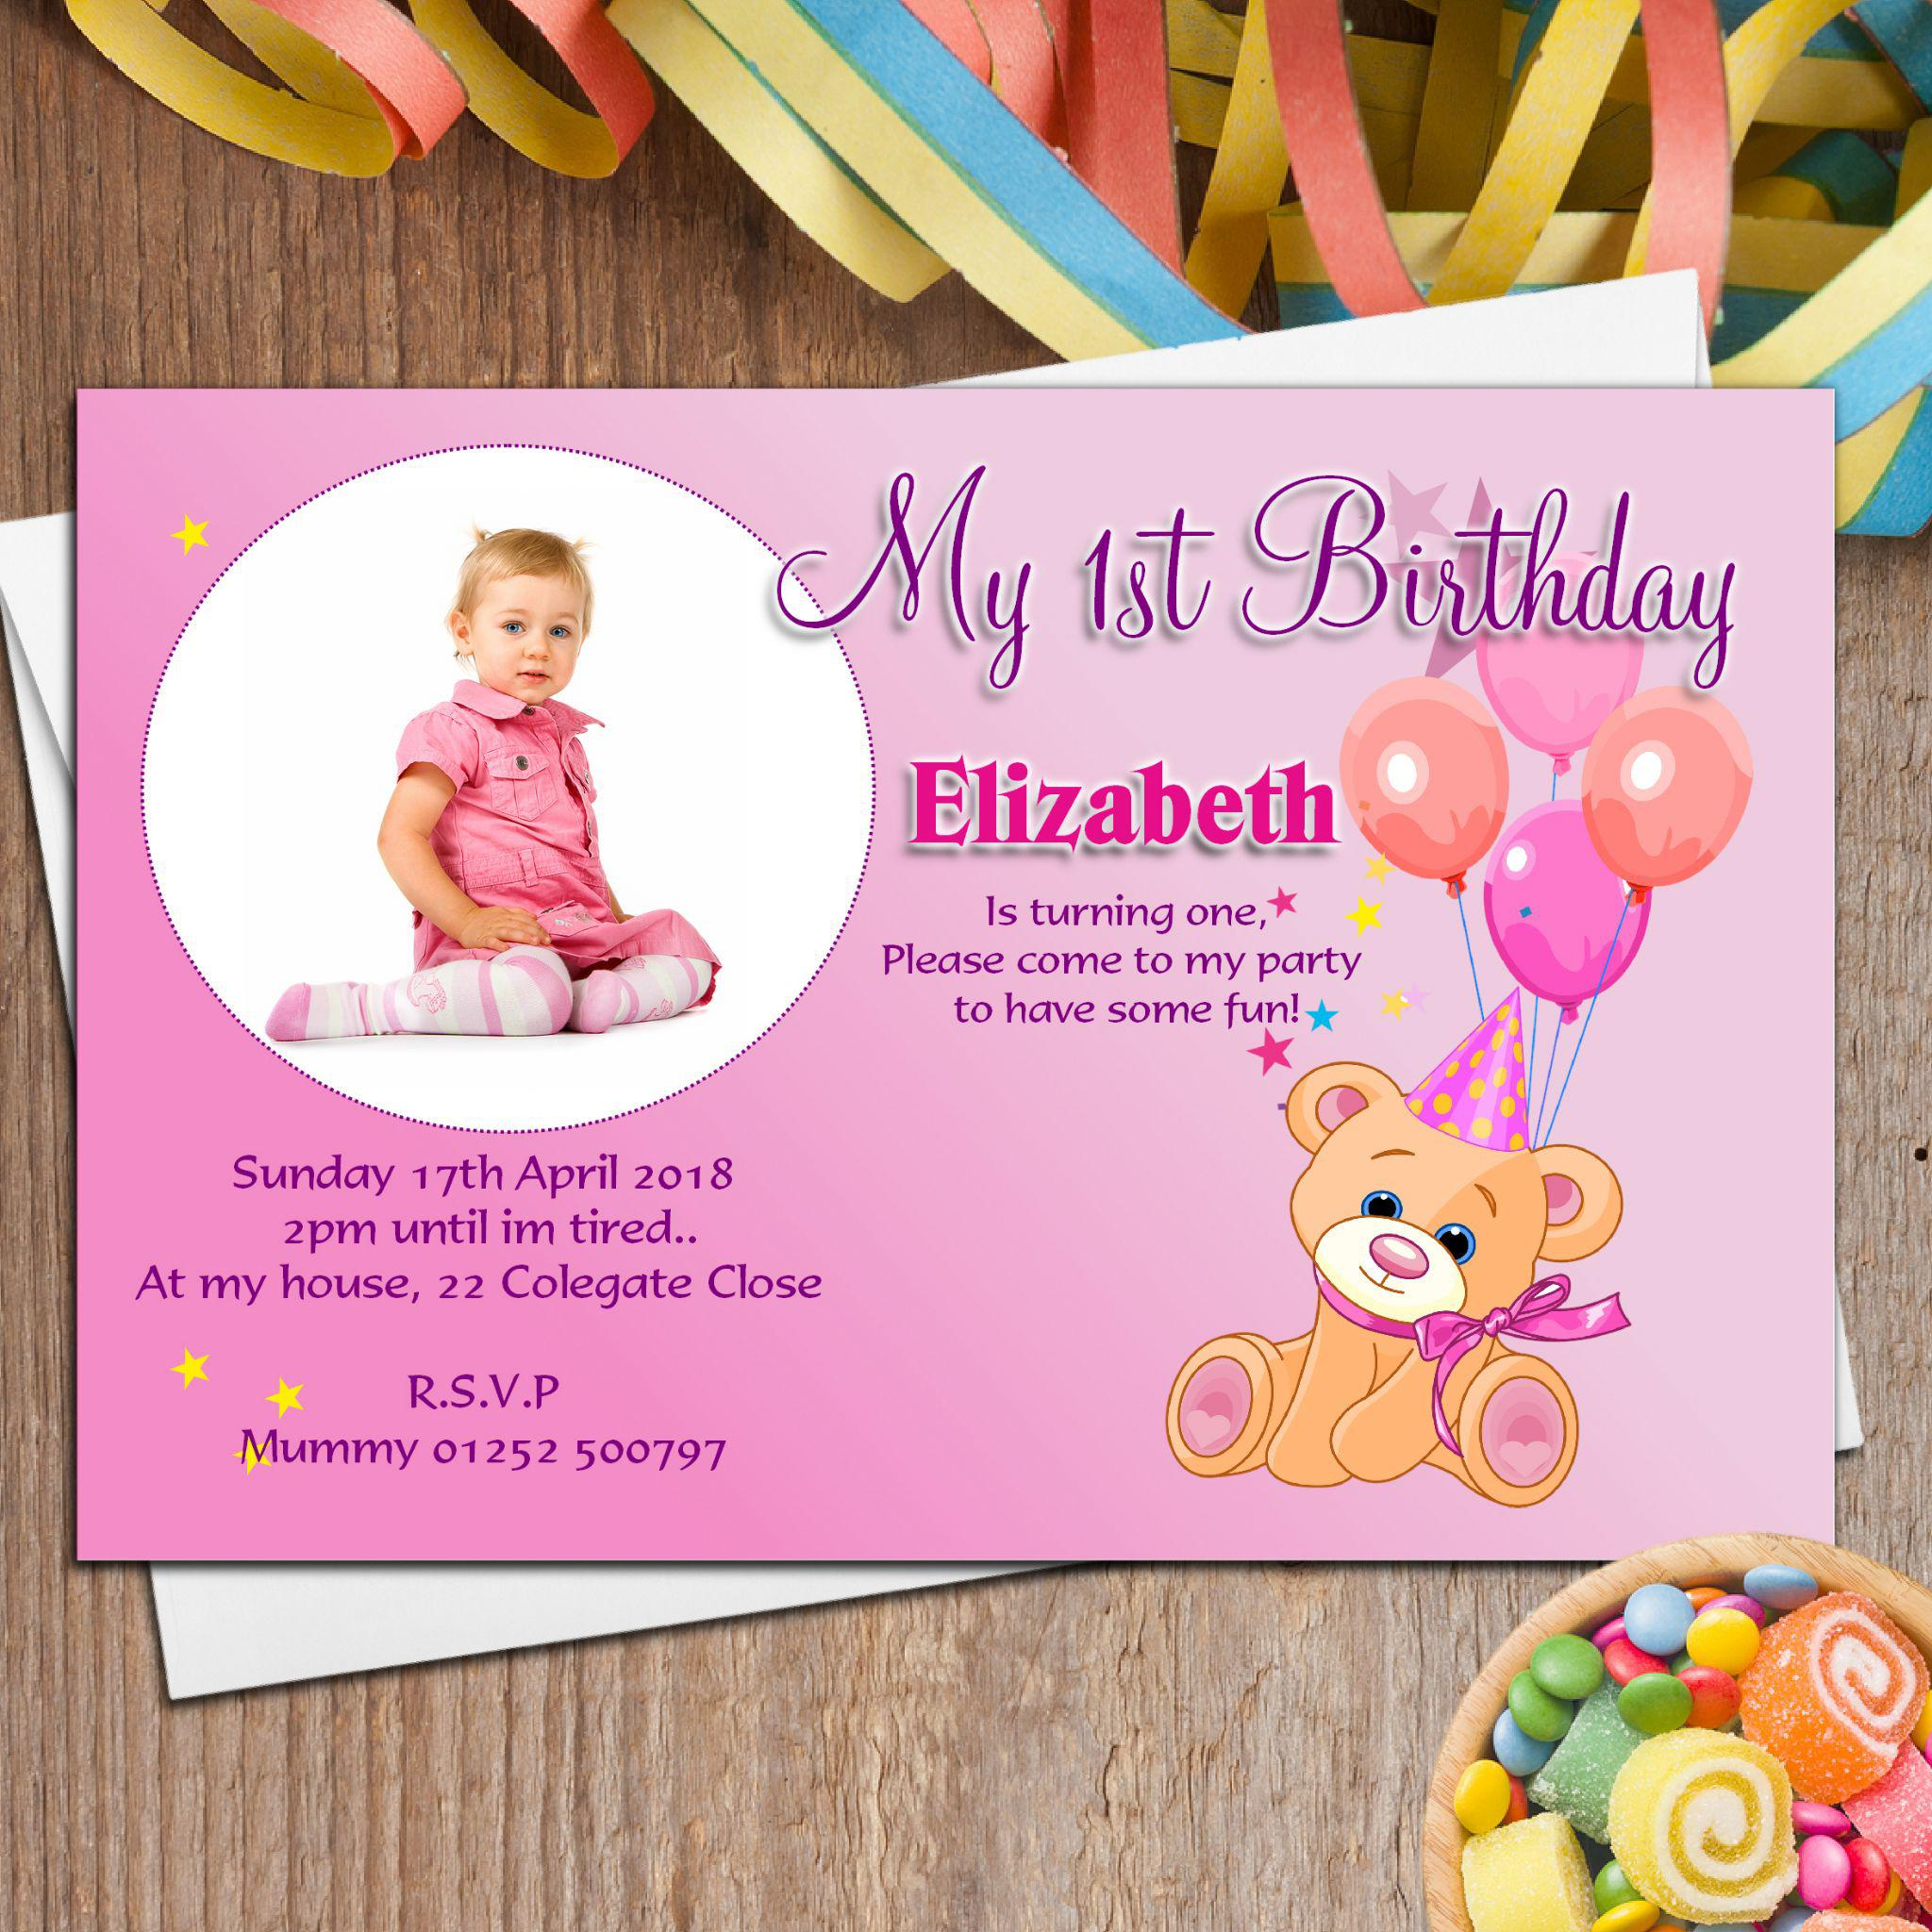 birthday invitation design ideas ; Birthday-Invitation-Cards-Personalized-Teddy-Party-For-Girl